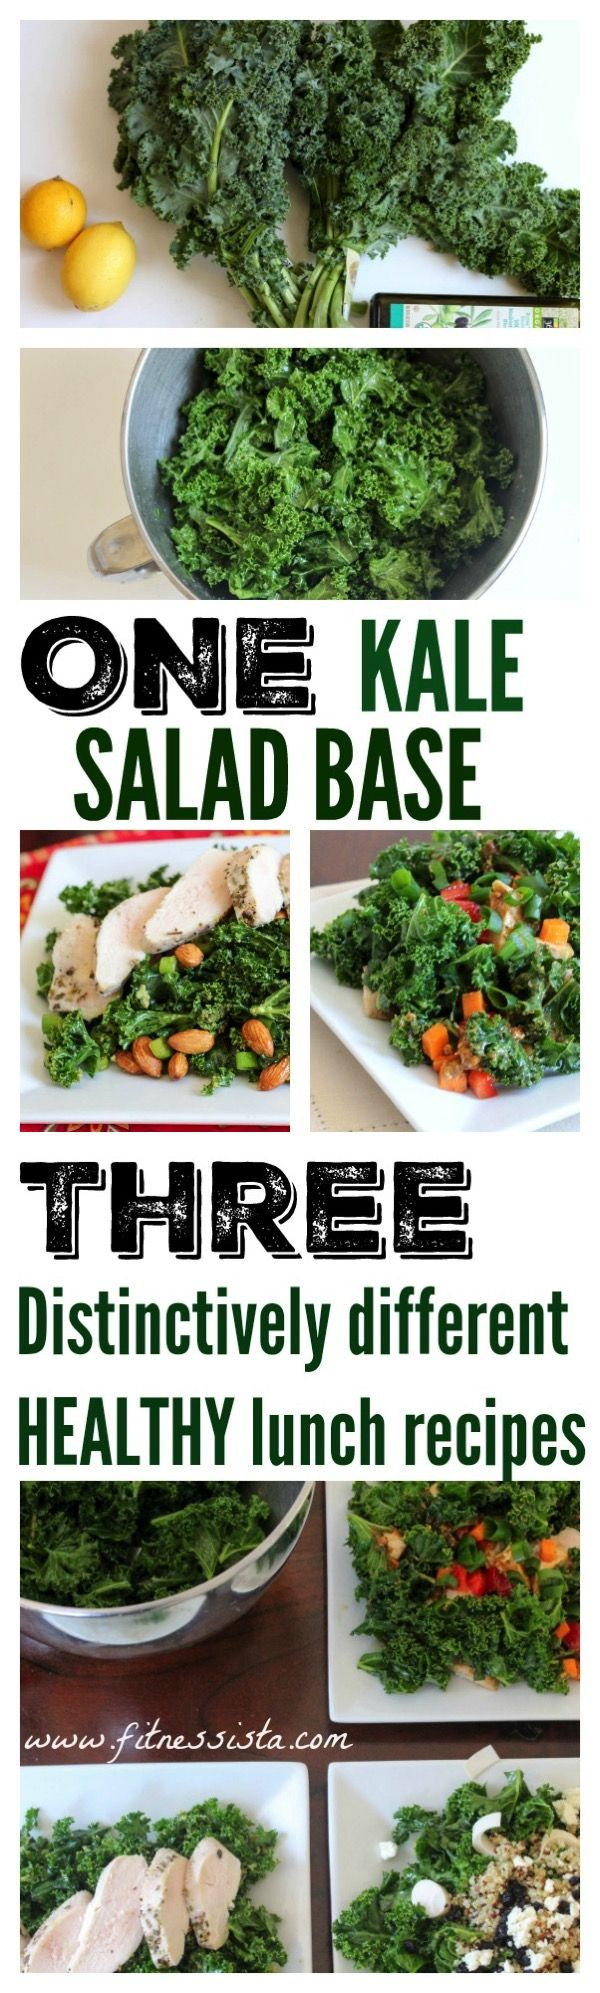 One kale salad base, three different salads. Instead of eating the day thing every day with meal prep, change it up! fitnessista.com